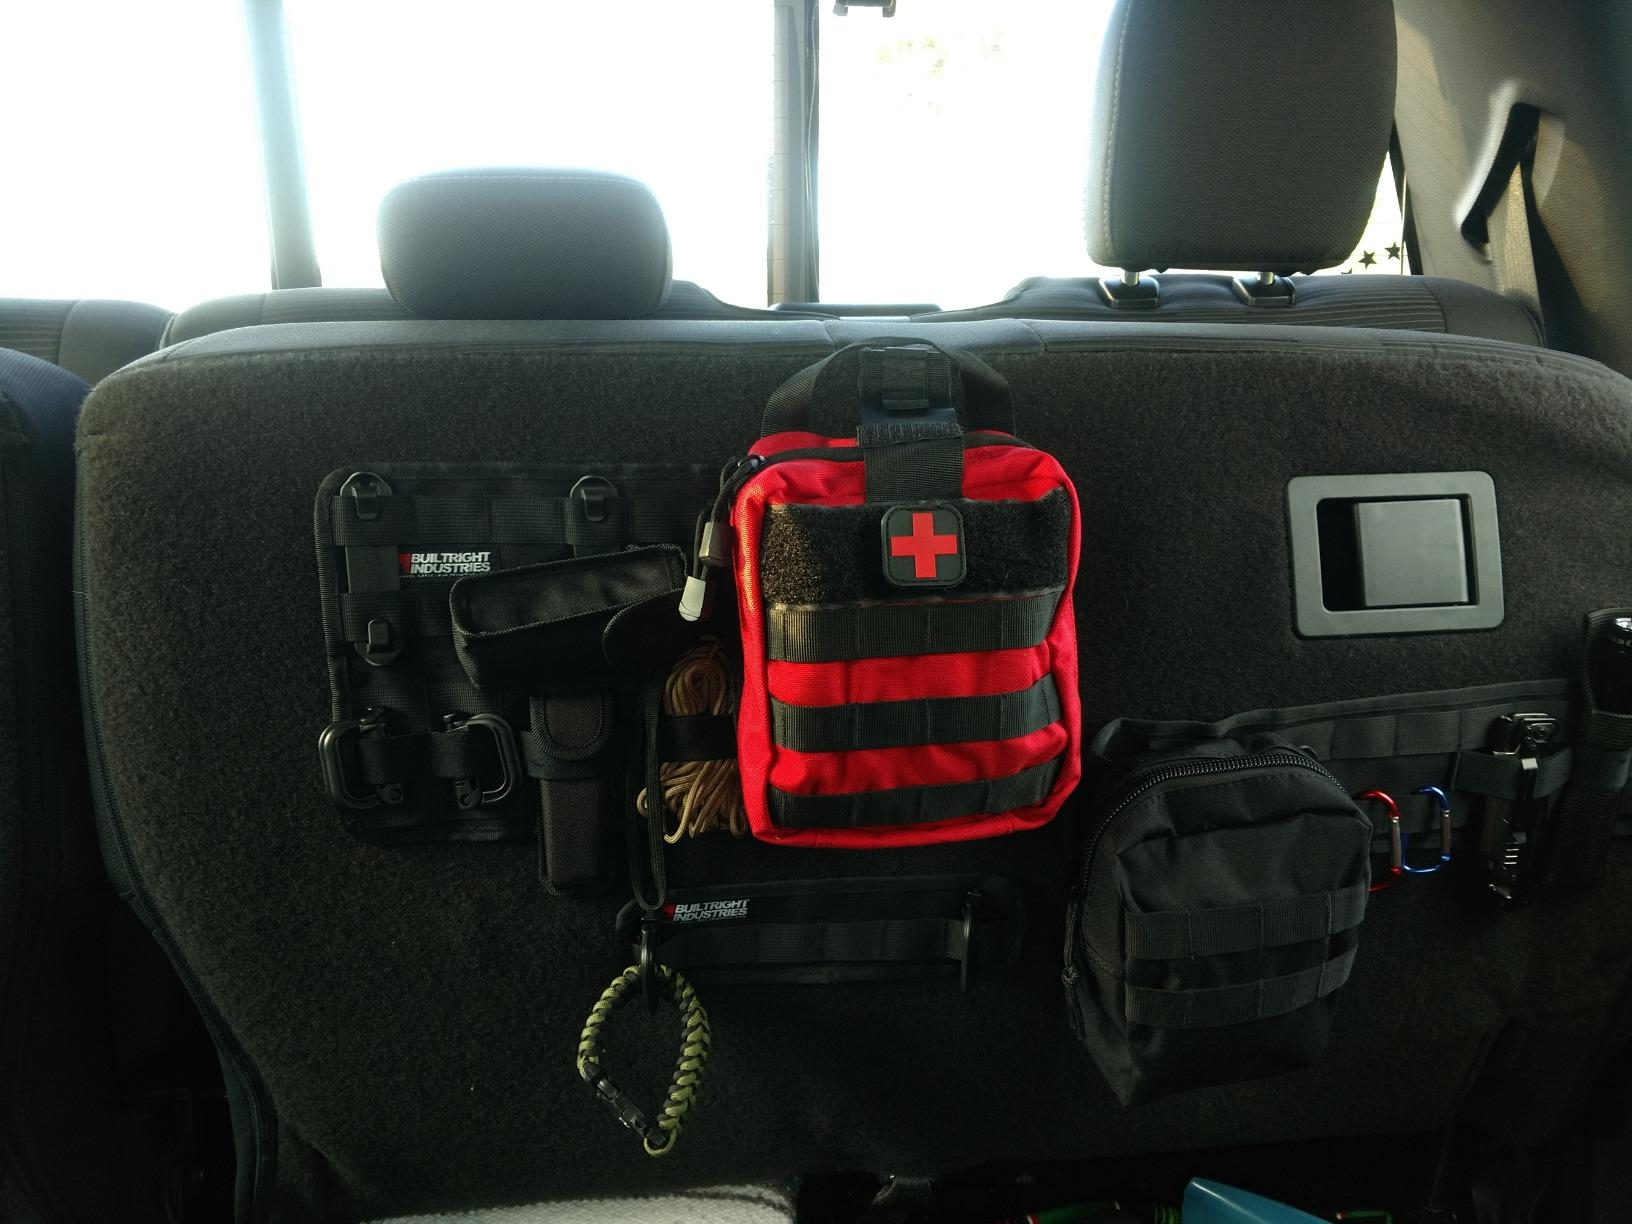 """""""There are certain things that my Matt and I are sure to keep in the car, like first aid kits. The BuiltRight panels are a perfect way to ensure that they're where we left them when we need them!"""" - Meredith B. from Minnesota"""